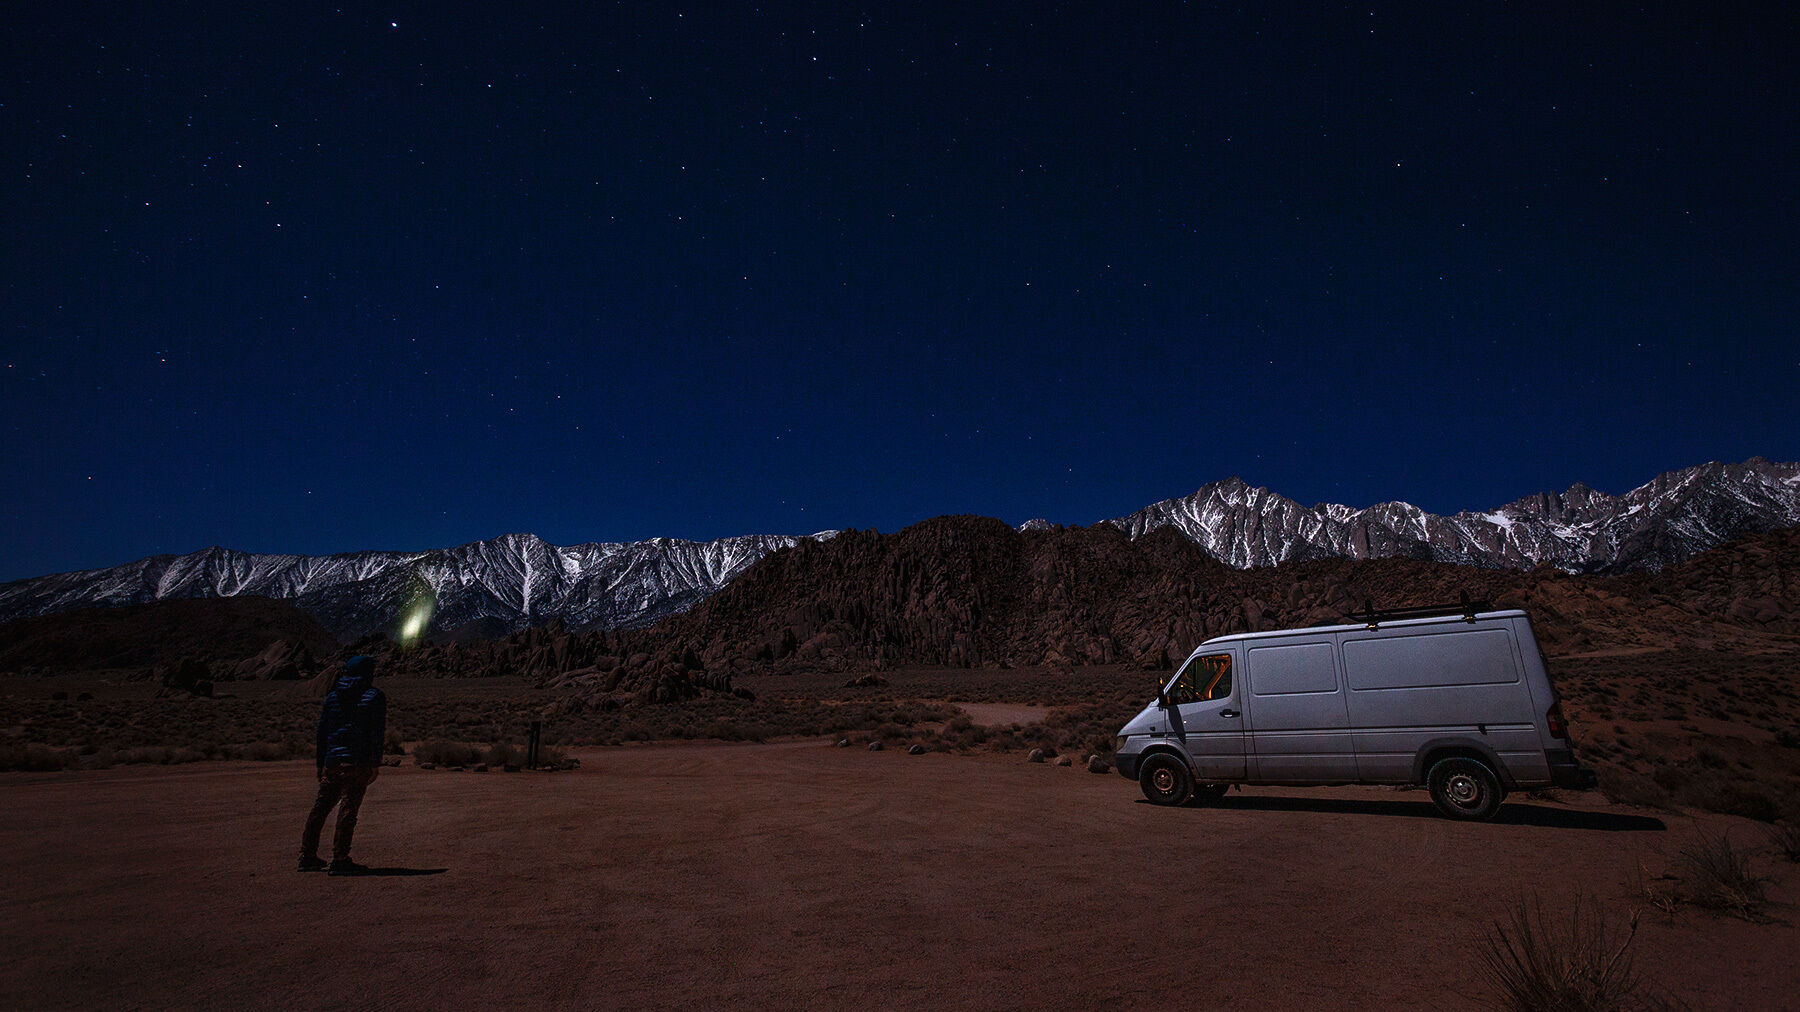 Starry sky over the the Eastern Sierra Mountains in the Alabama Hills, California